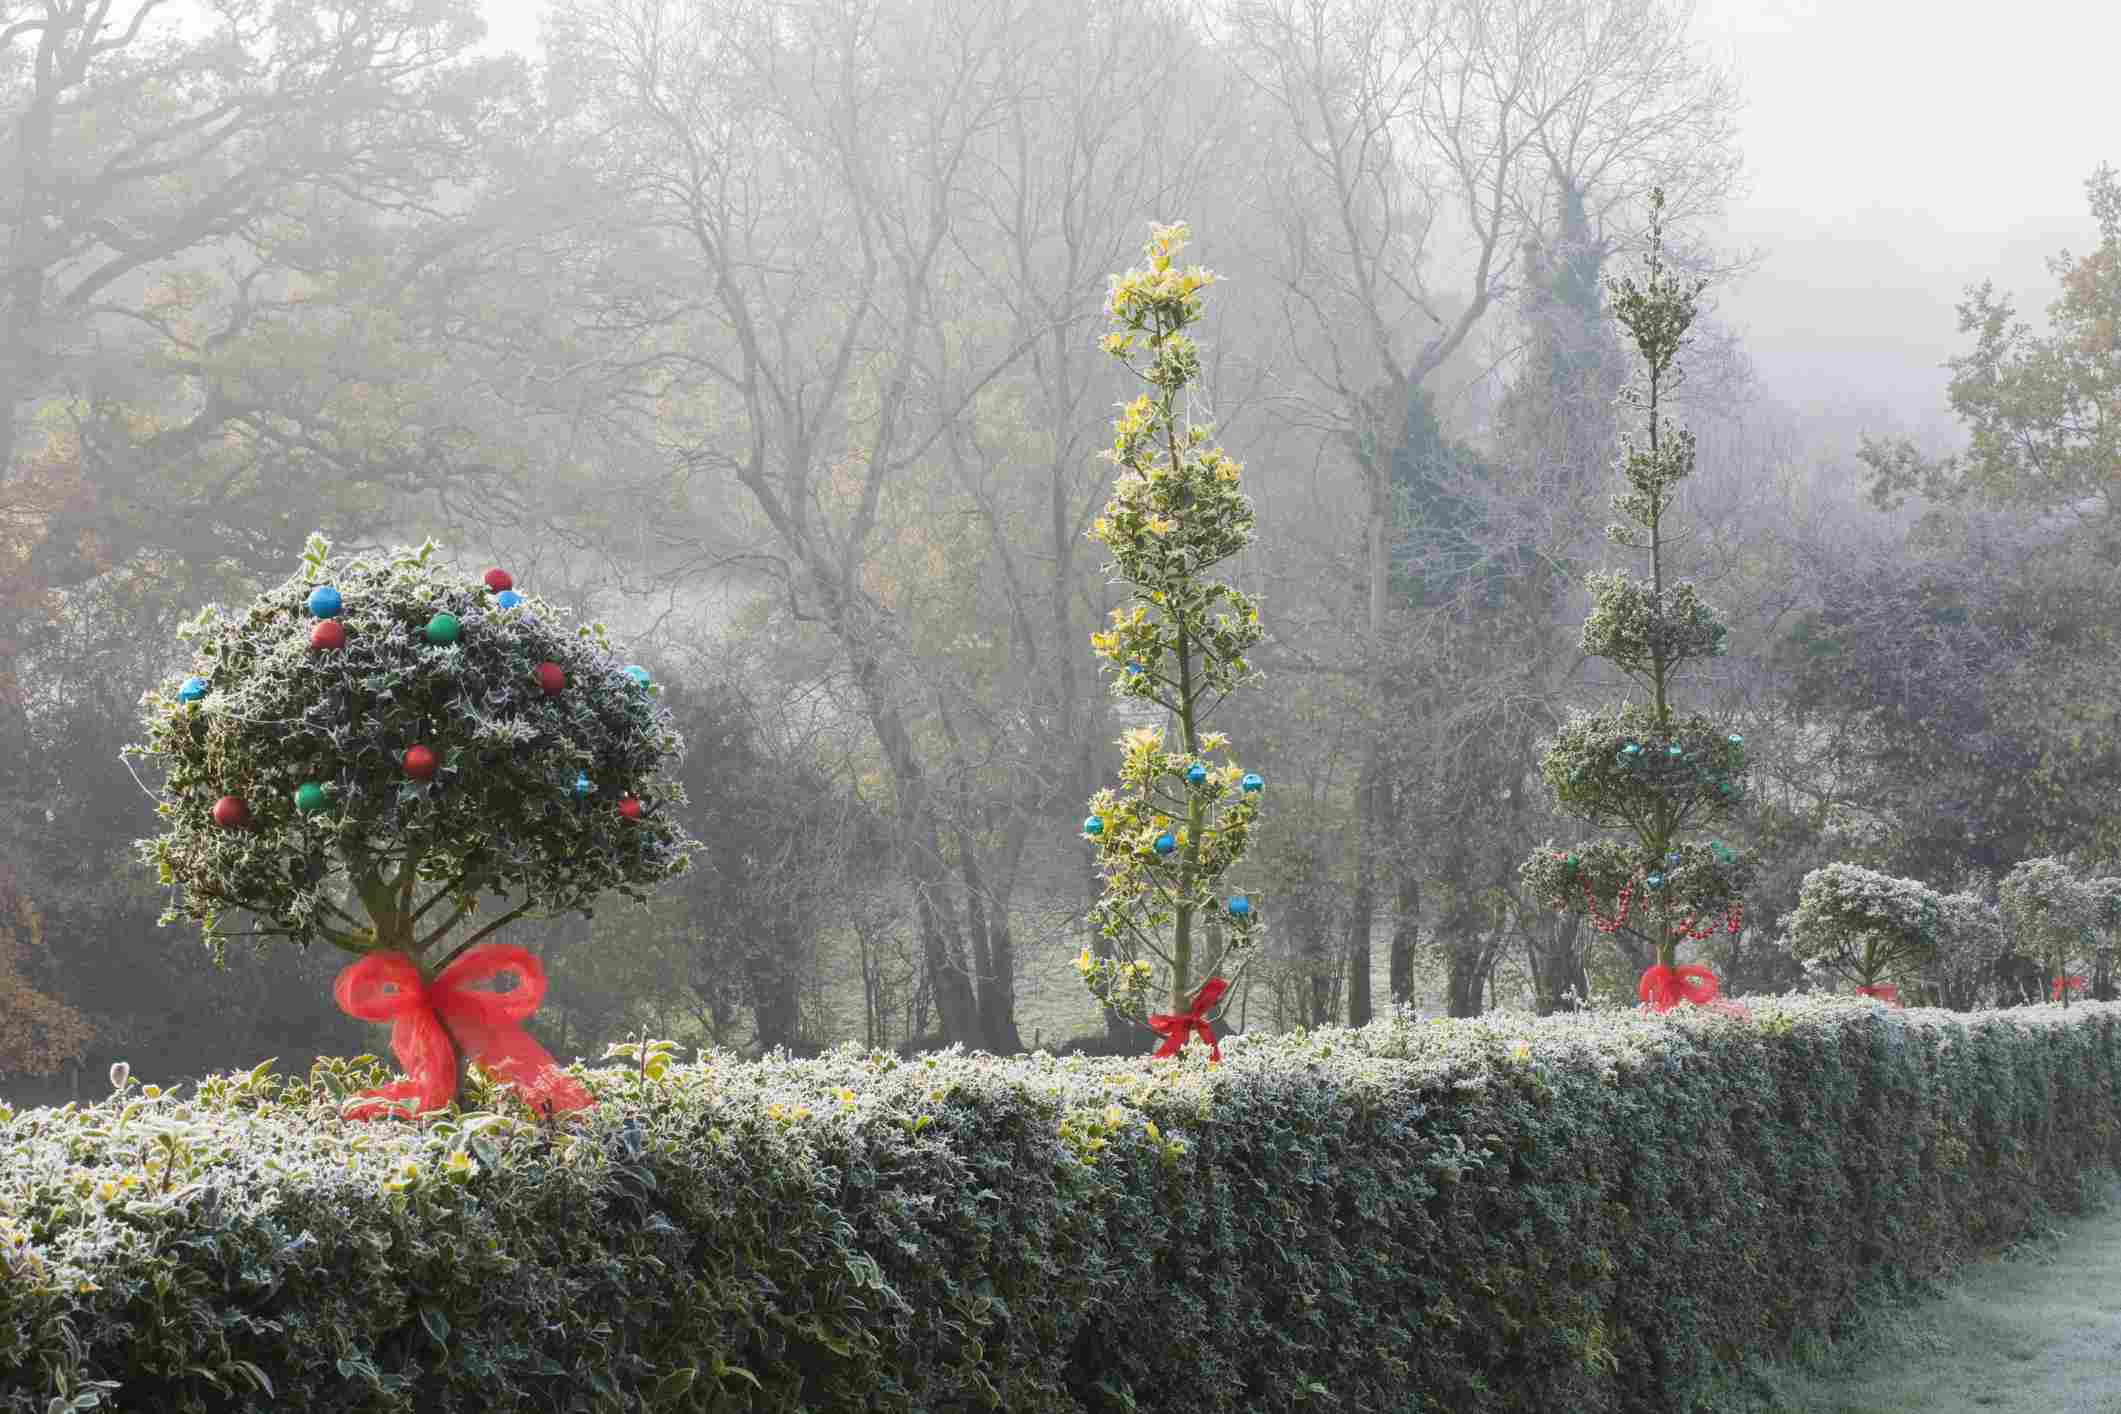 Hedge covered in frost, with other plants decorated for Christmas.